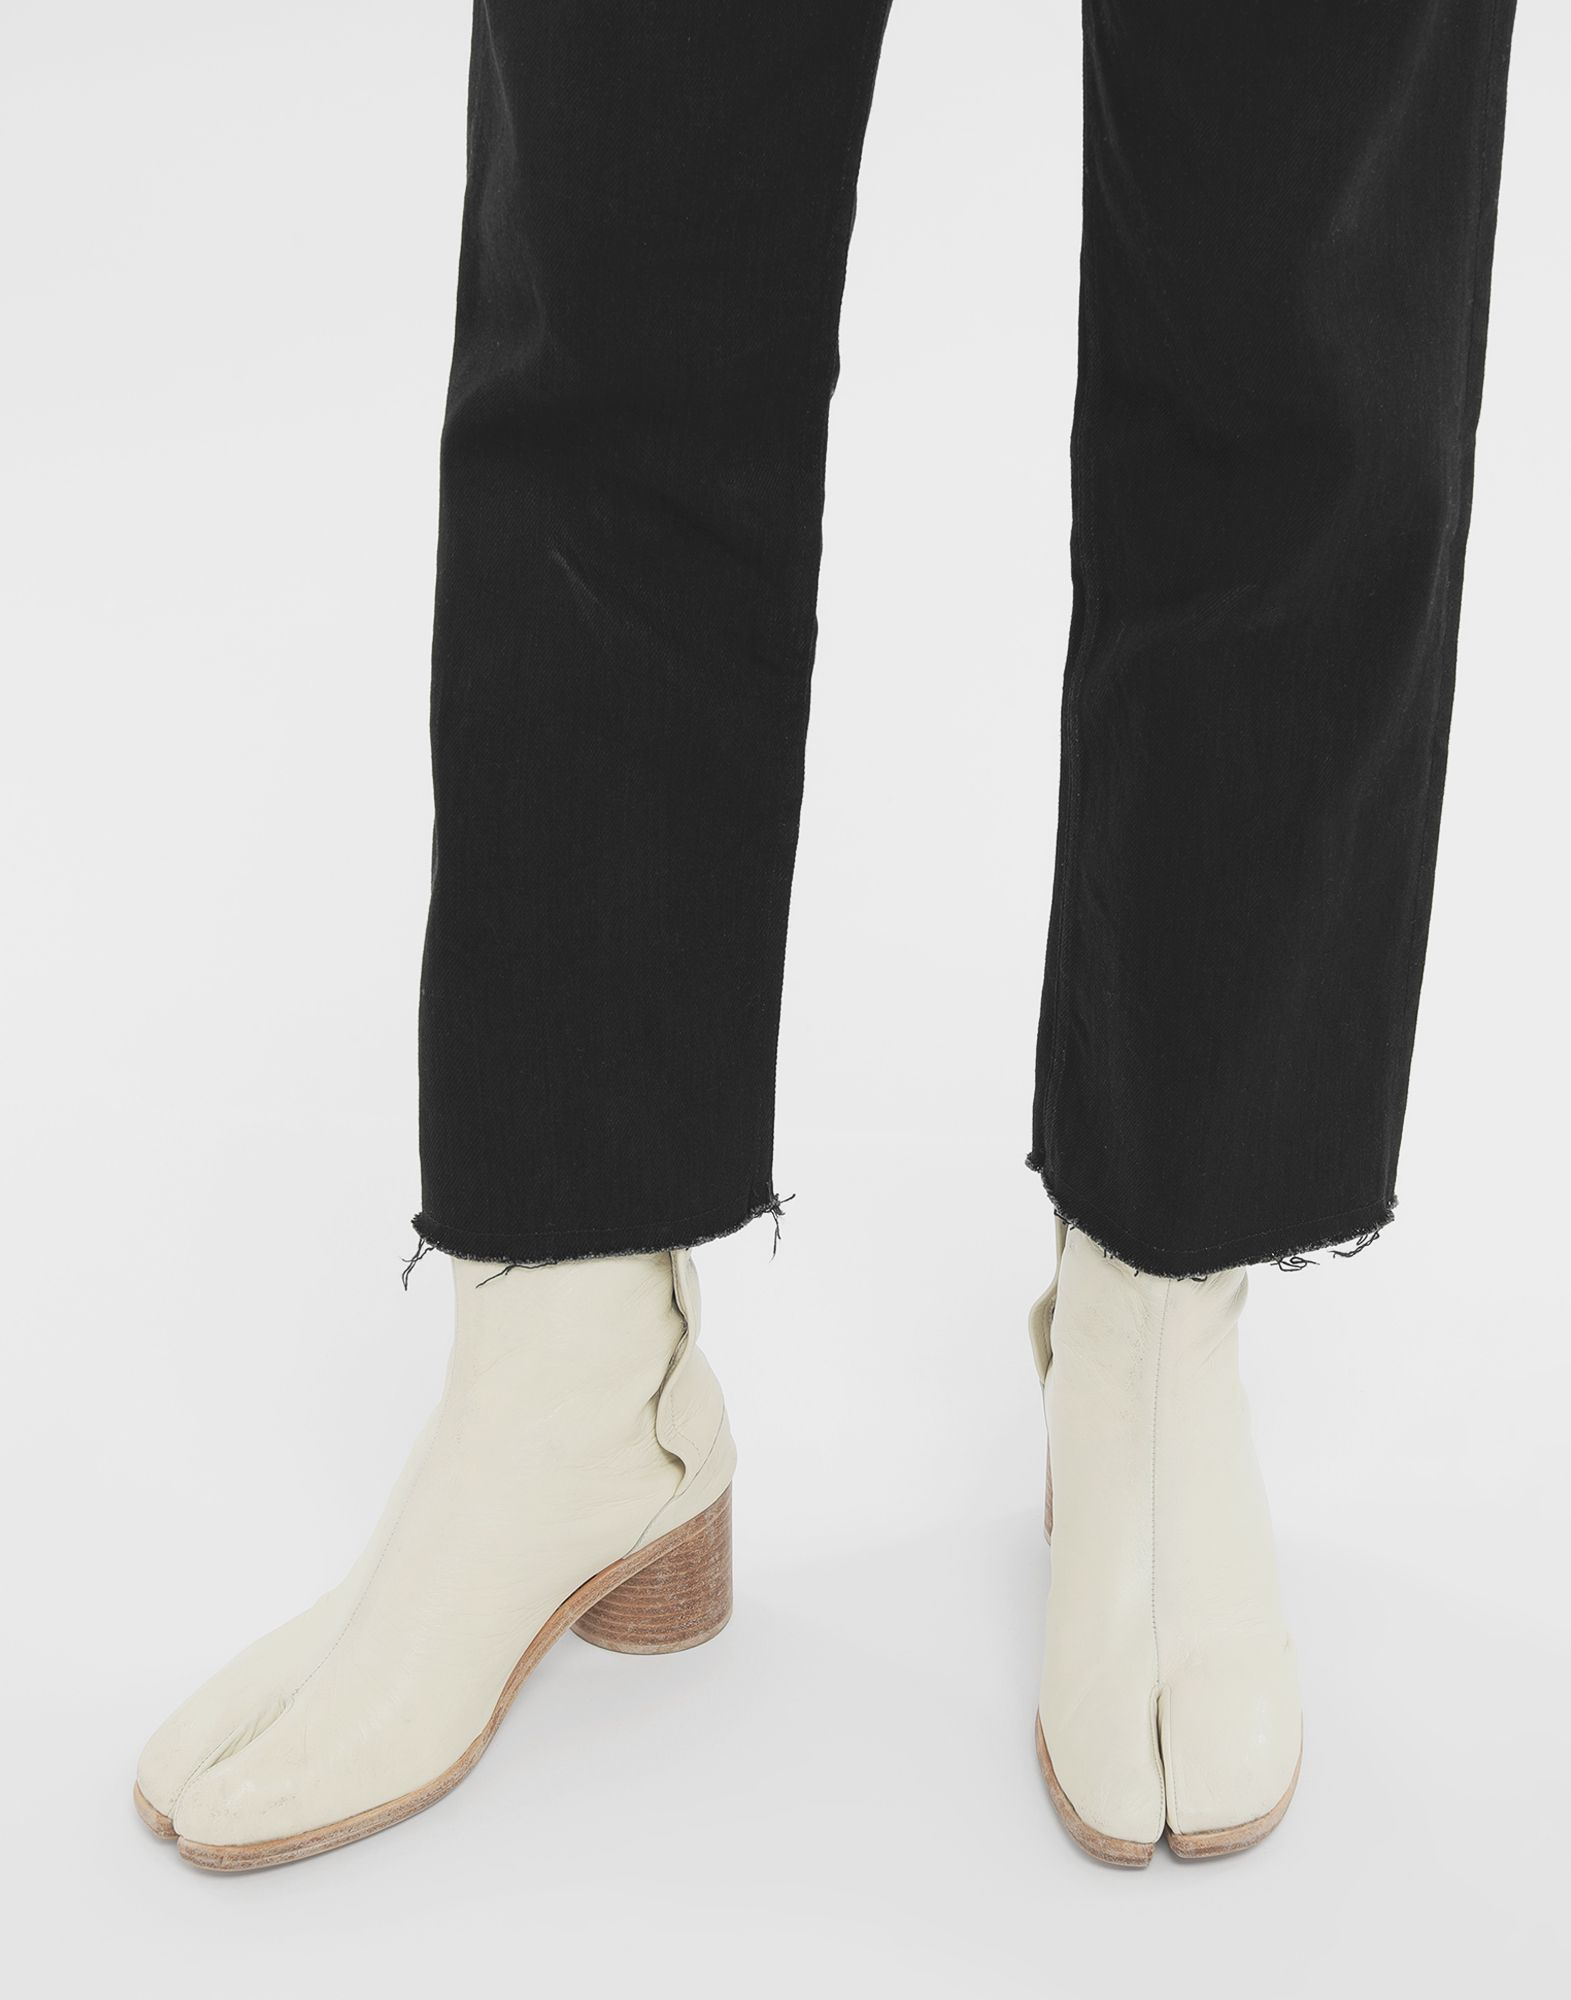 MAISON MARGIELA Tabi ankle boots Tabi boots & Ankle boots Man r